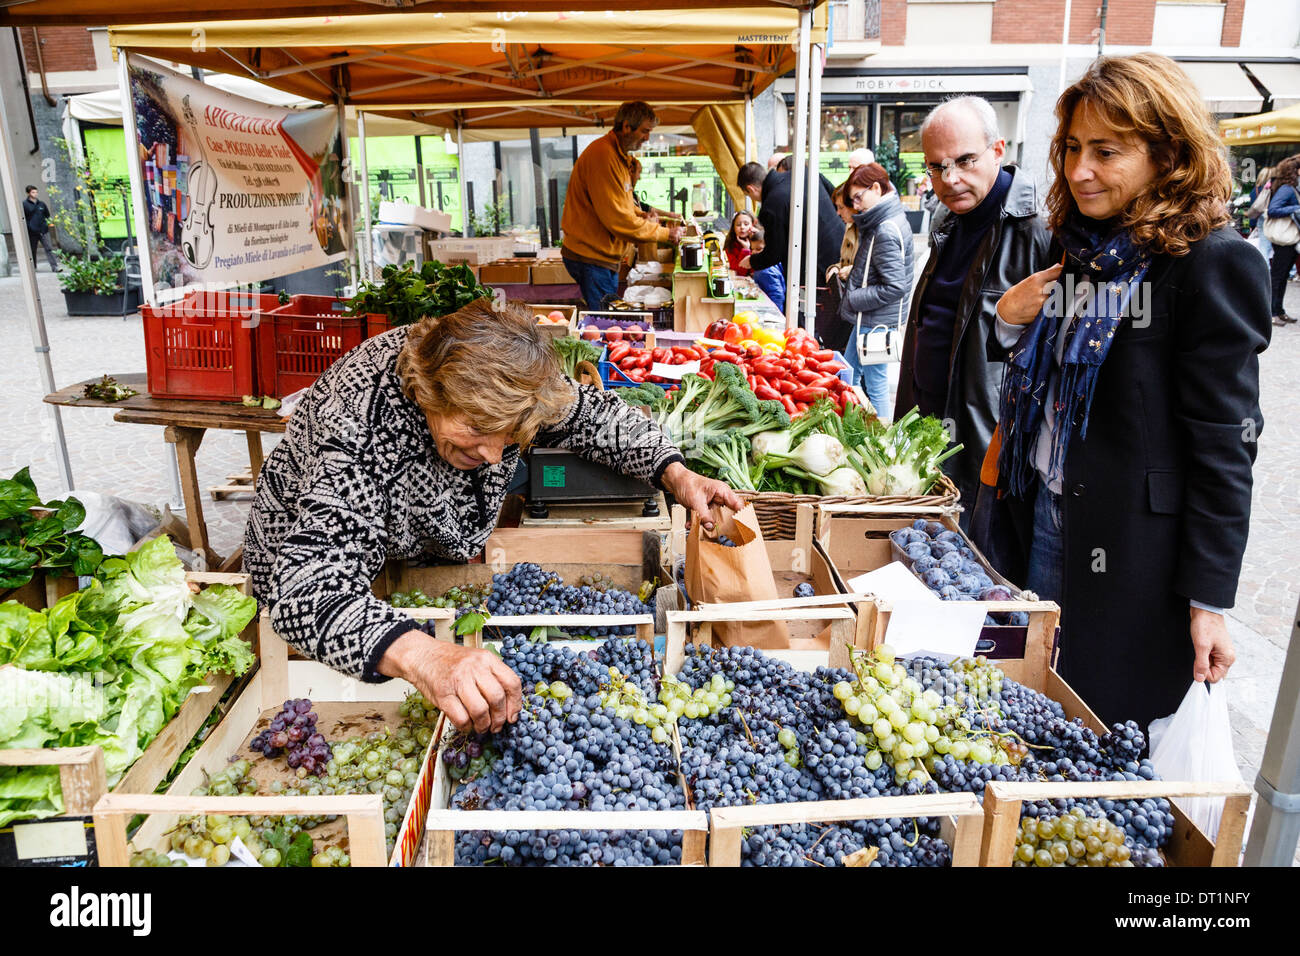 Fruit and vegetable stall at a market in Alba, Langhe, Cueno, Piedmont, Italy, Europe - Stock Image